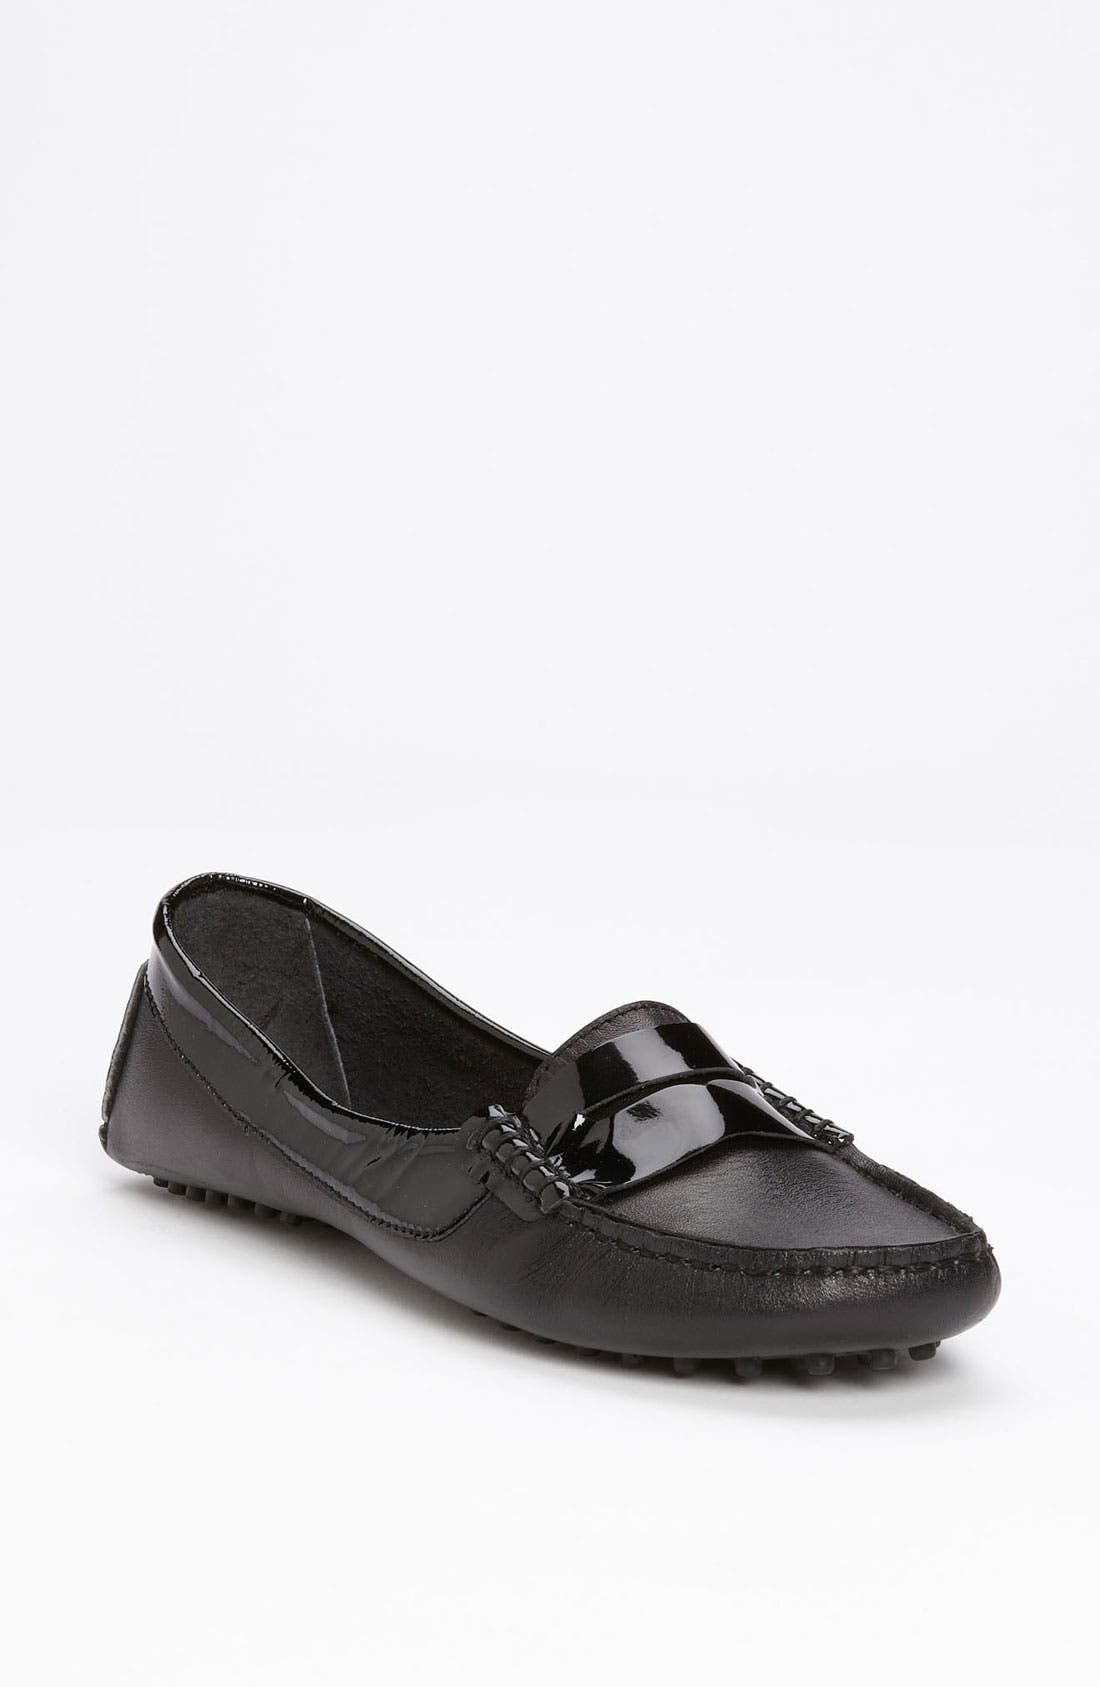 Main Image - Jacques Levine 'Harper' Loafer